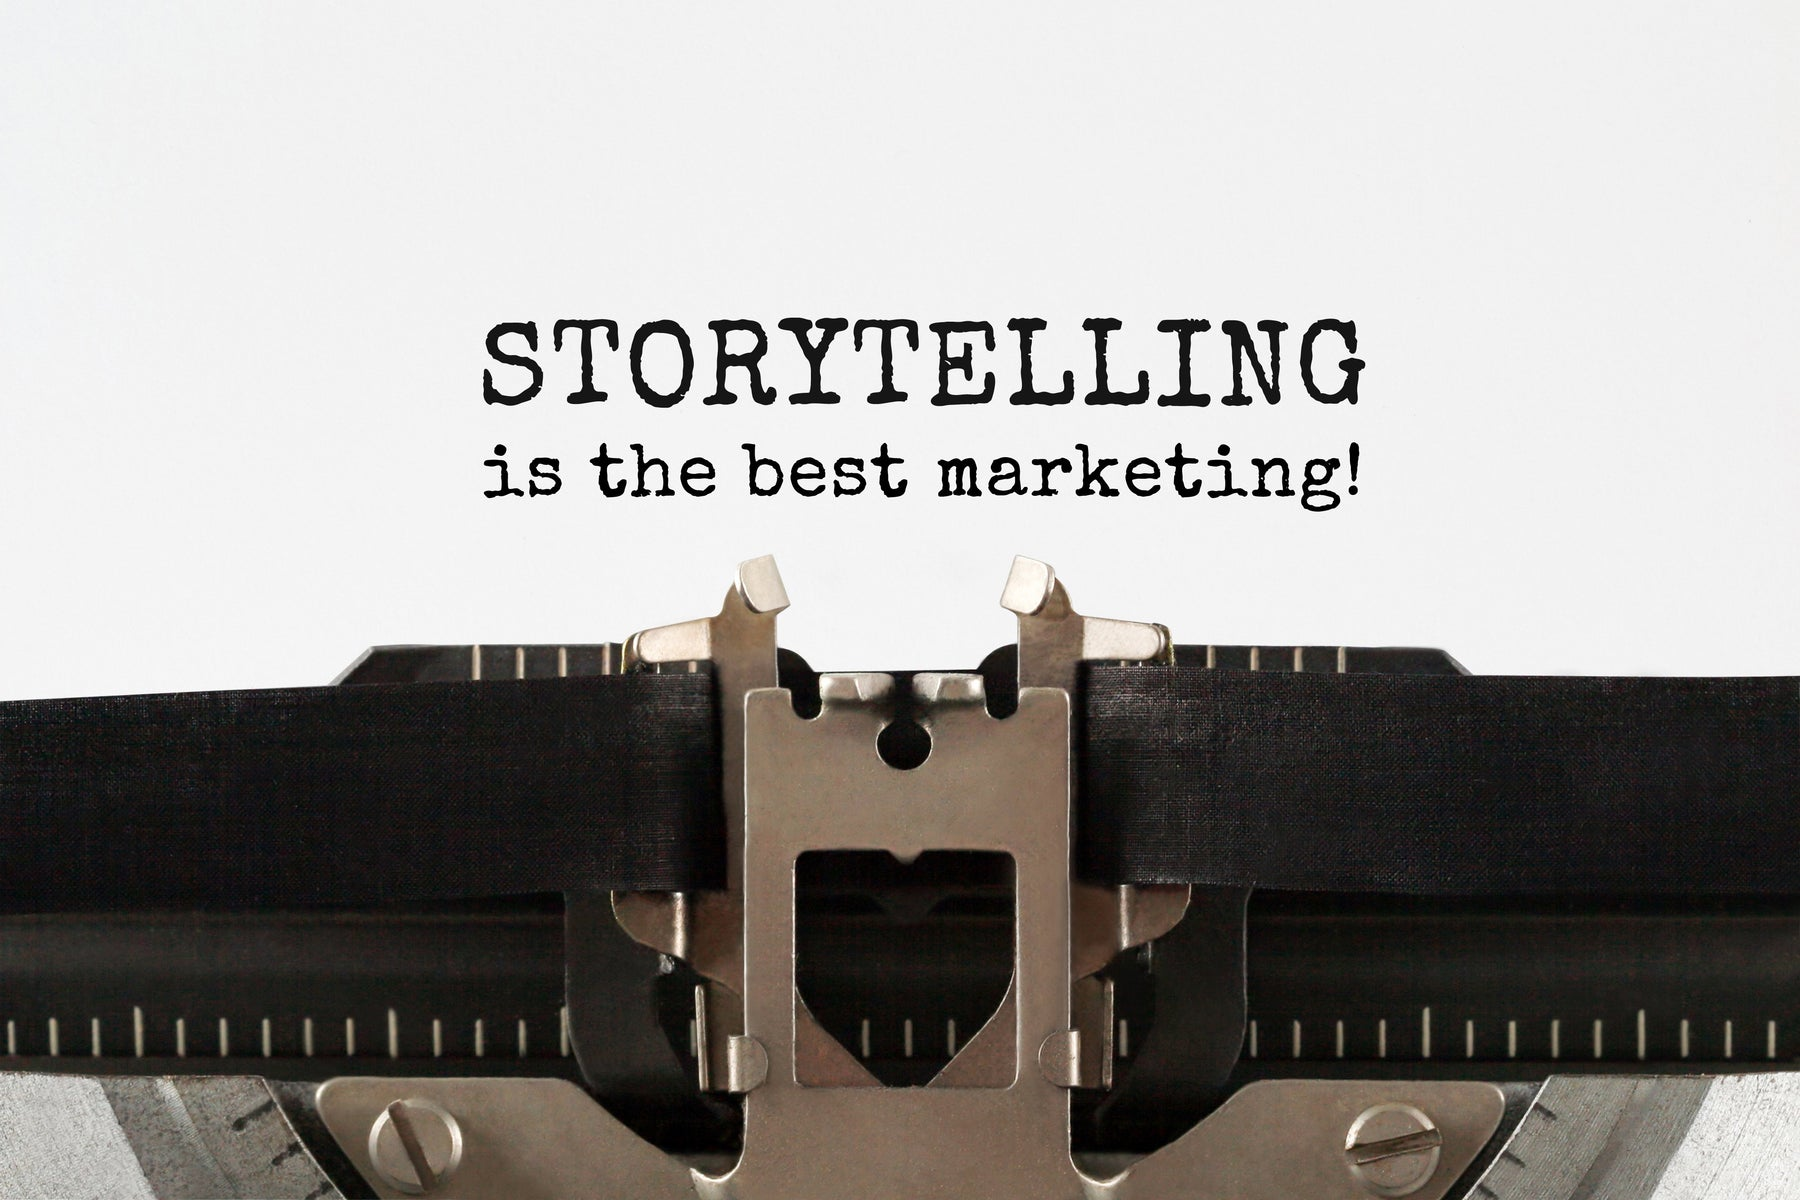 How storytelling boosts customer experience & business profits